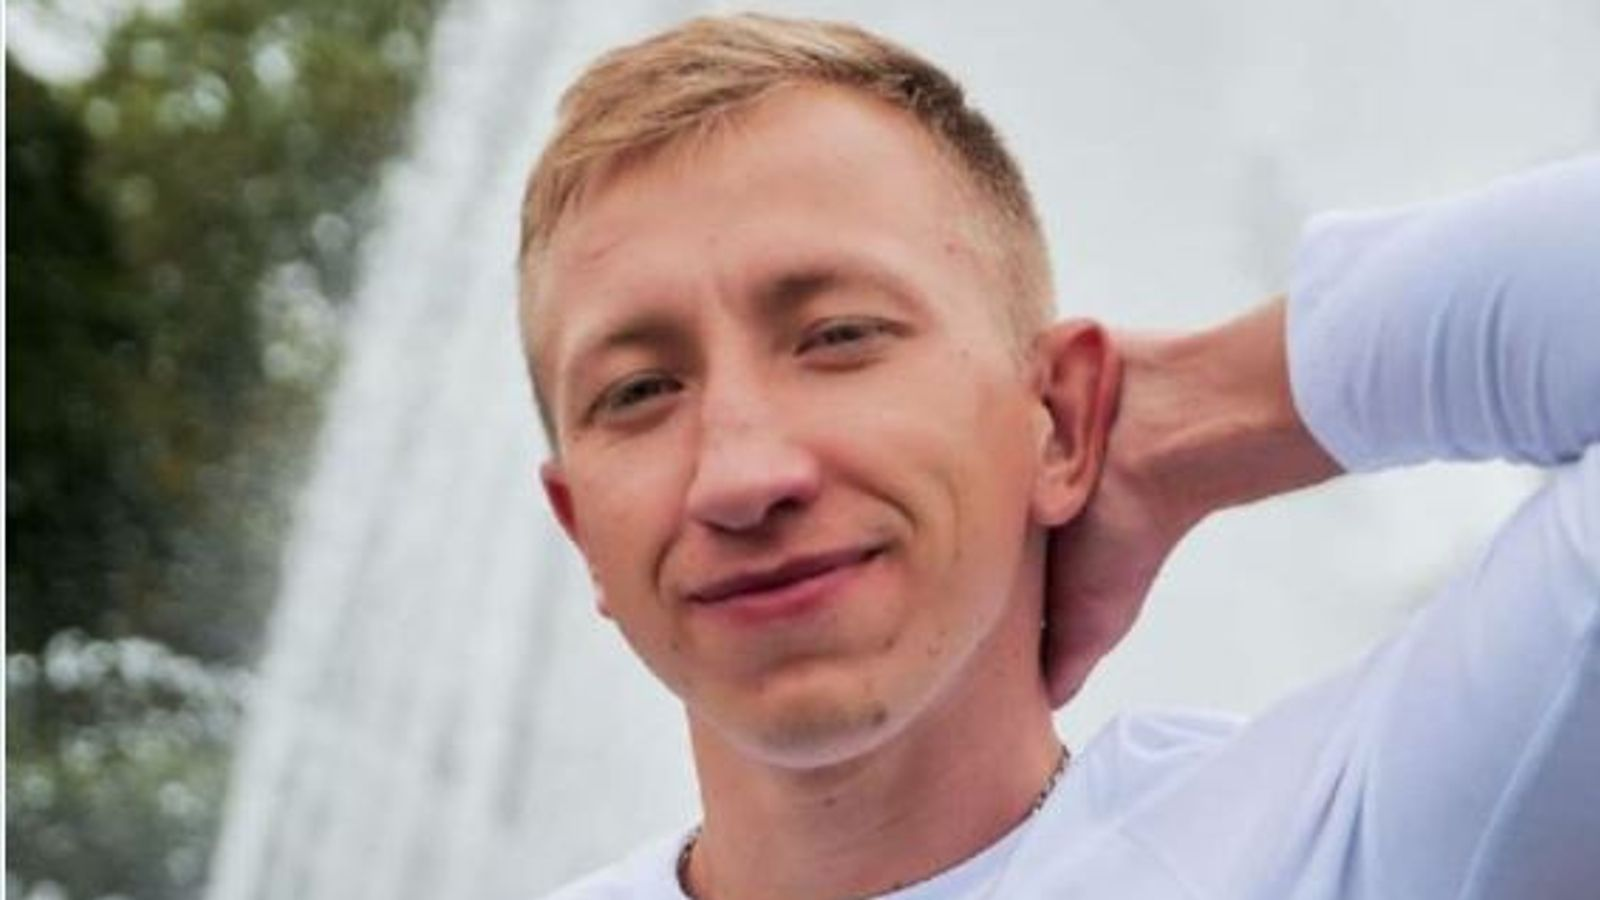 Vitaly Shishov: Missing Belarusian activist found dead in Kiev - police investigating 'all possibilities including murder disguised as suicide'